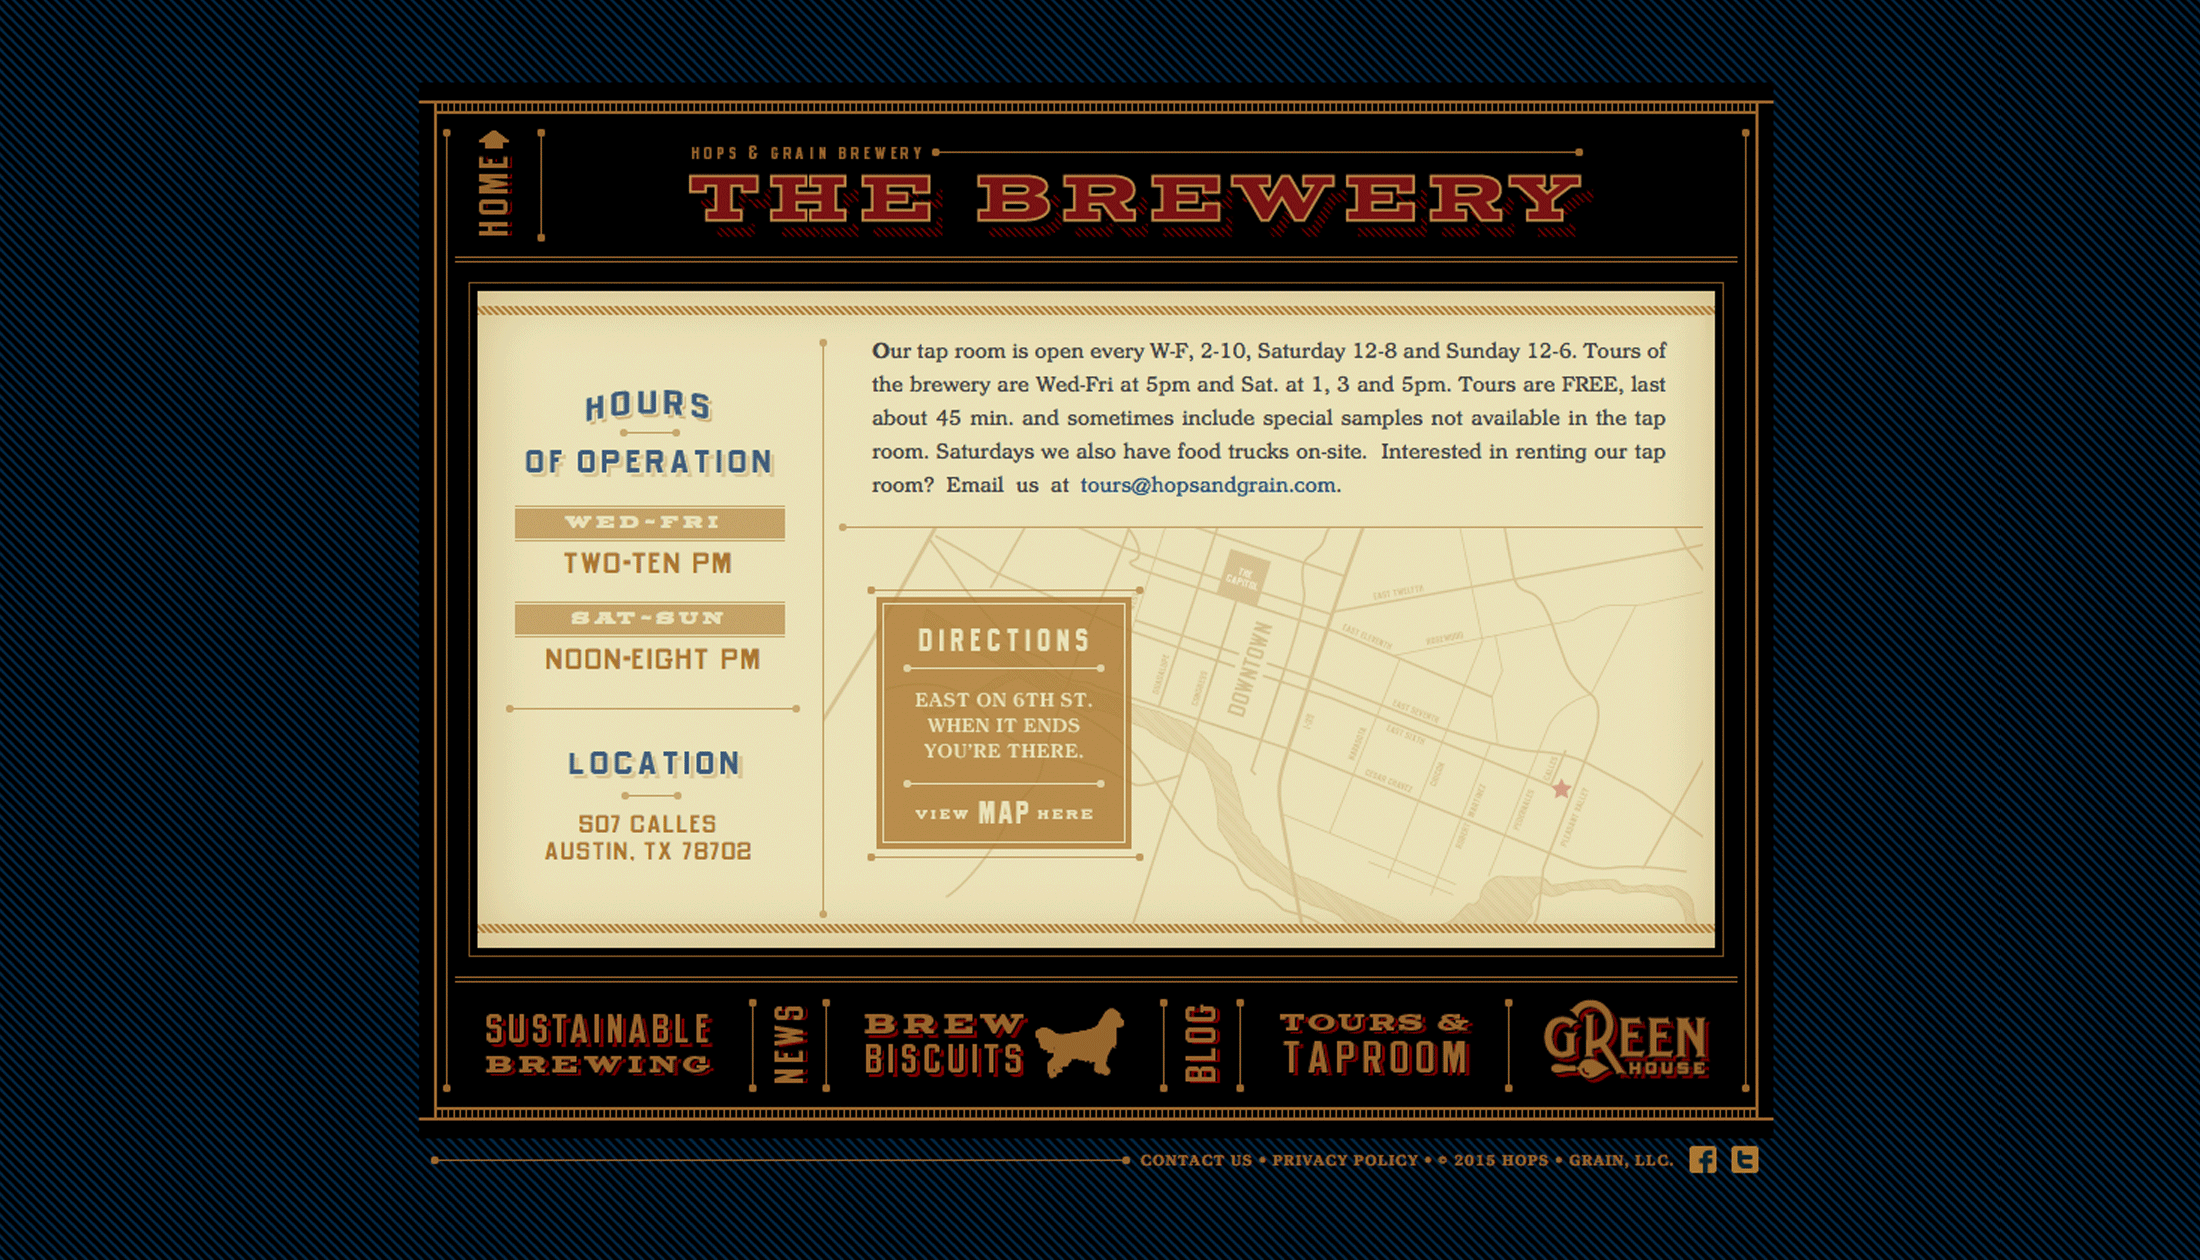 derouen_hops&grain_website3